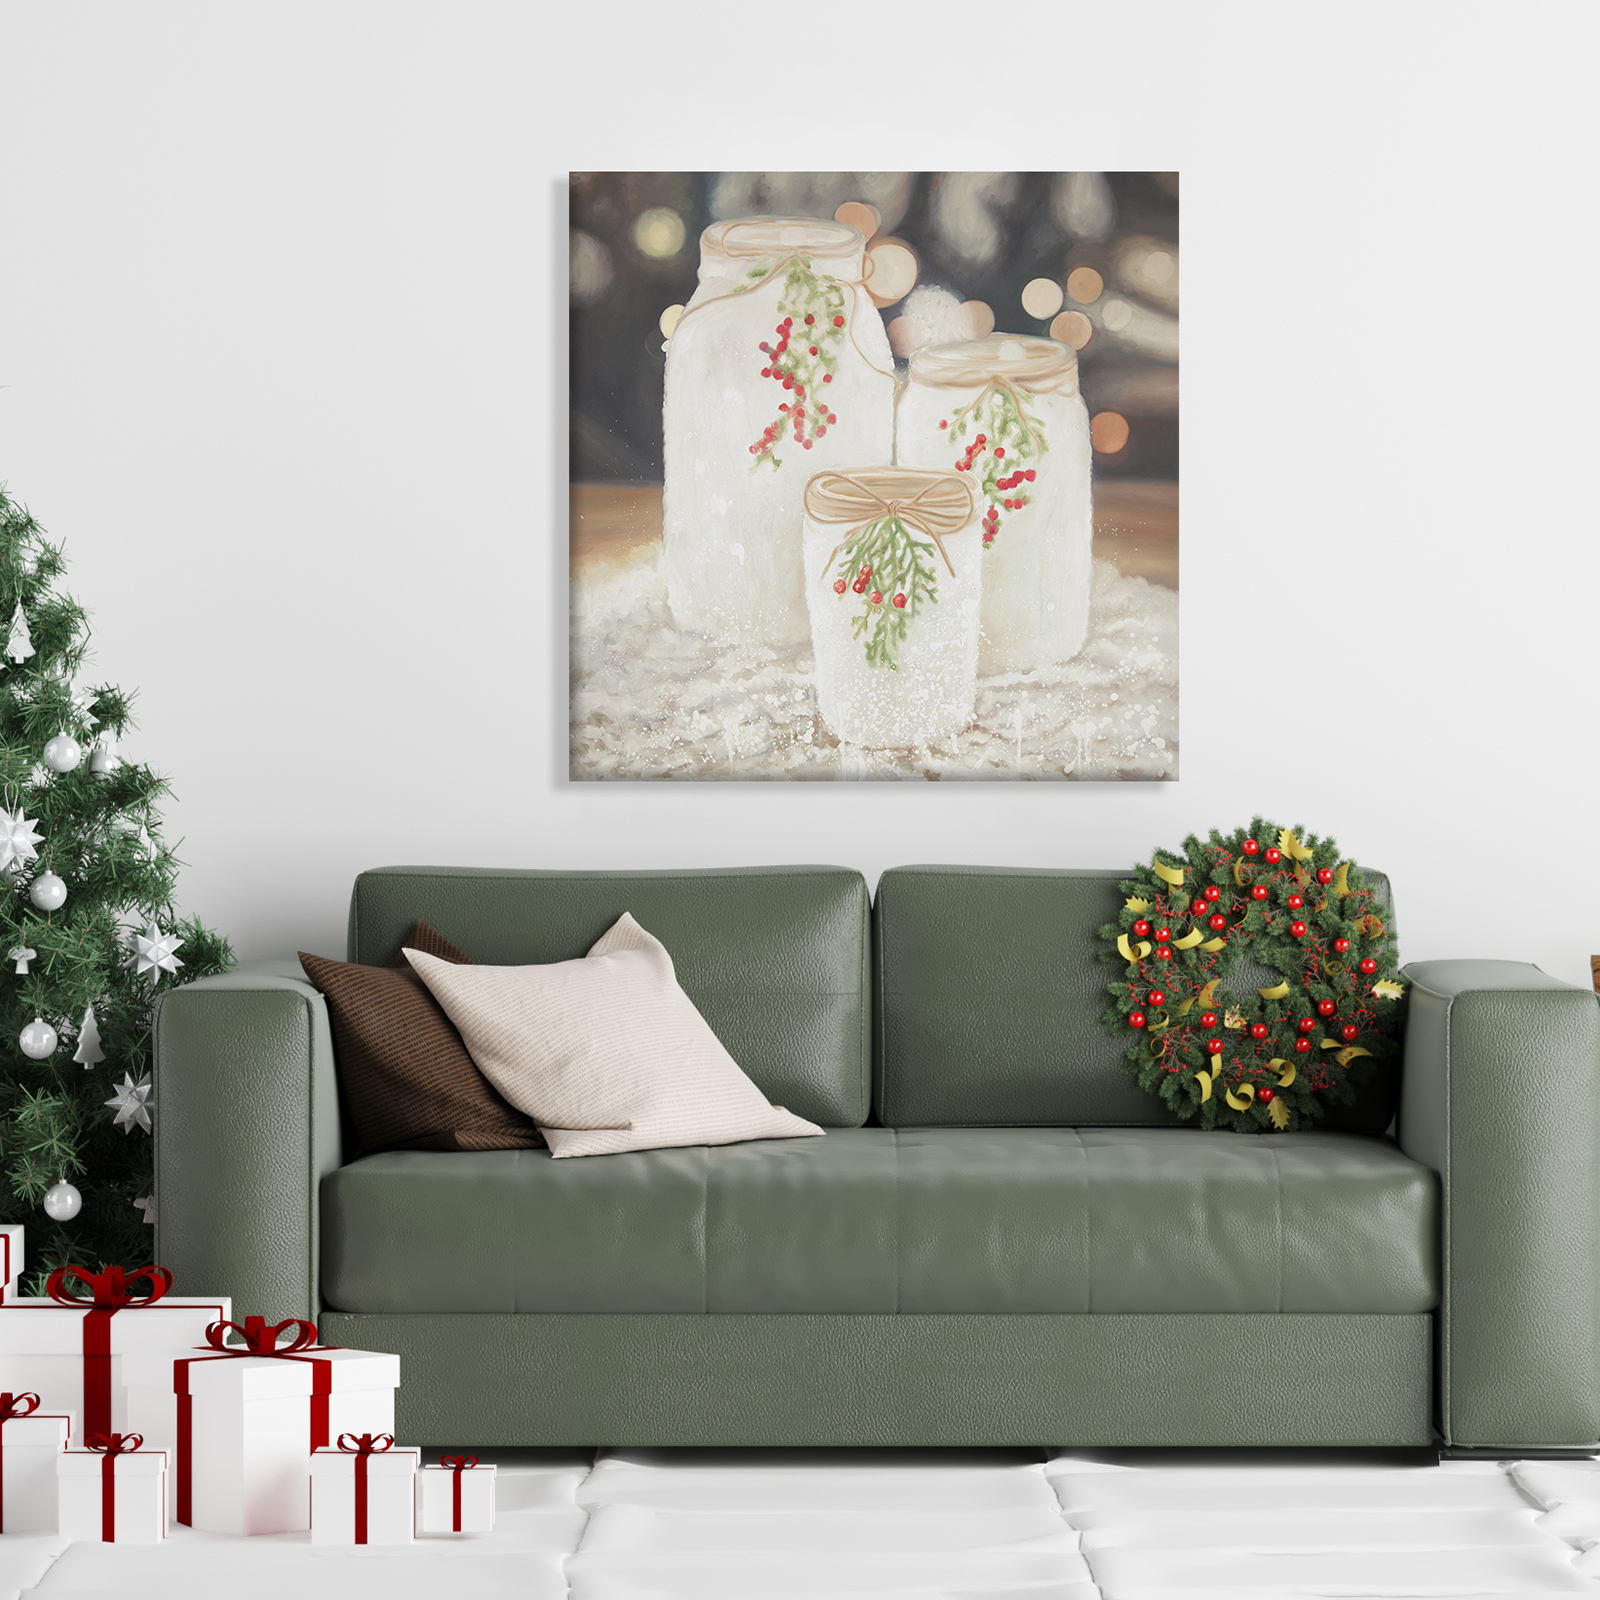 Canvas 24 x 24 - Christmas candles